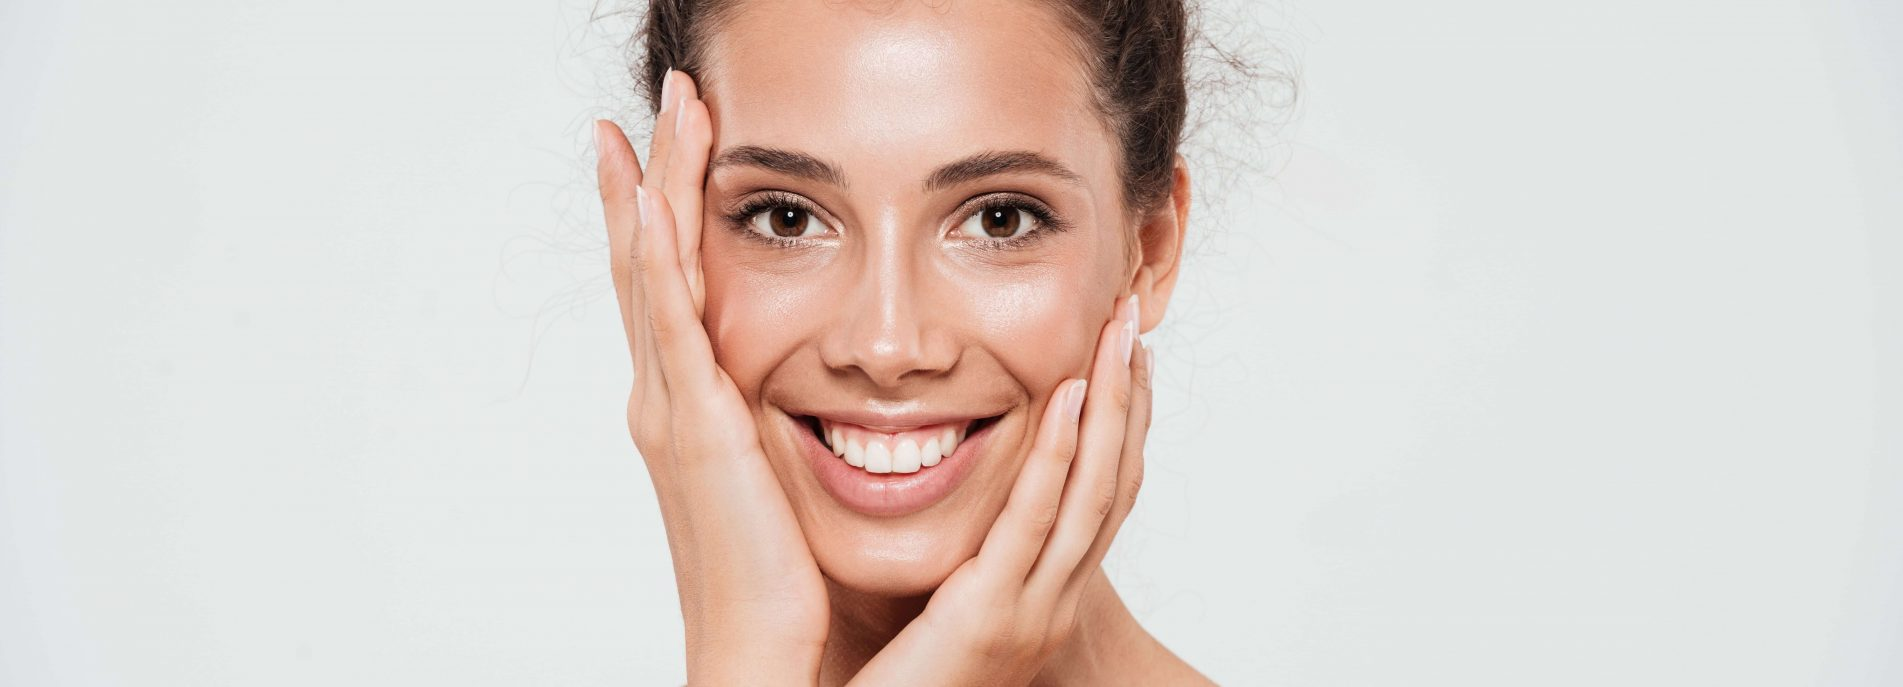 Top 10 Ways to Take Care of Your Skin for This Rainy Season